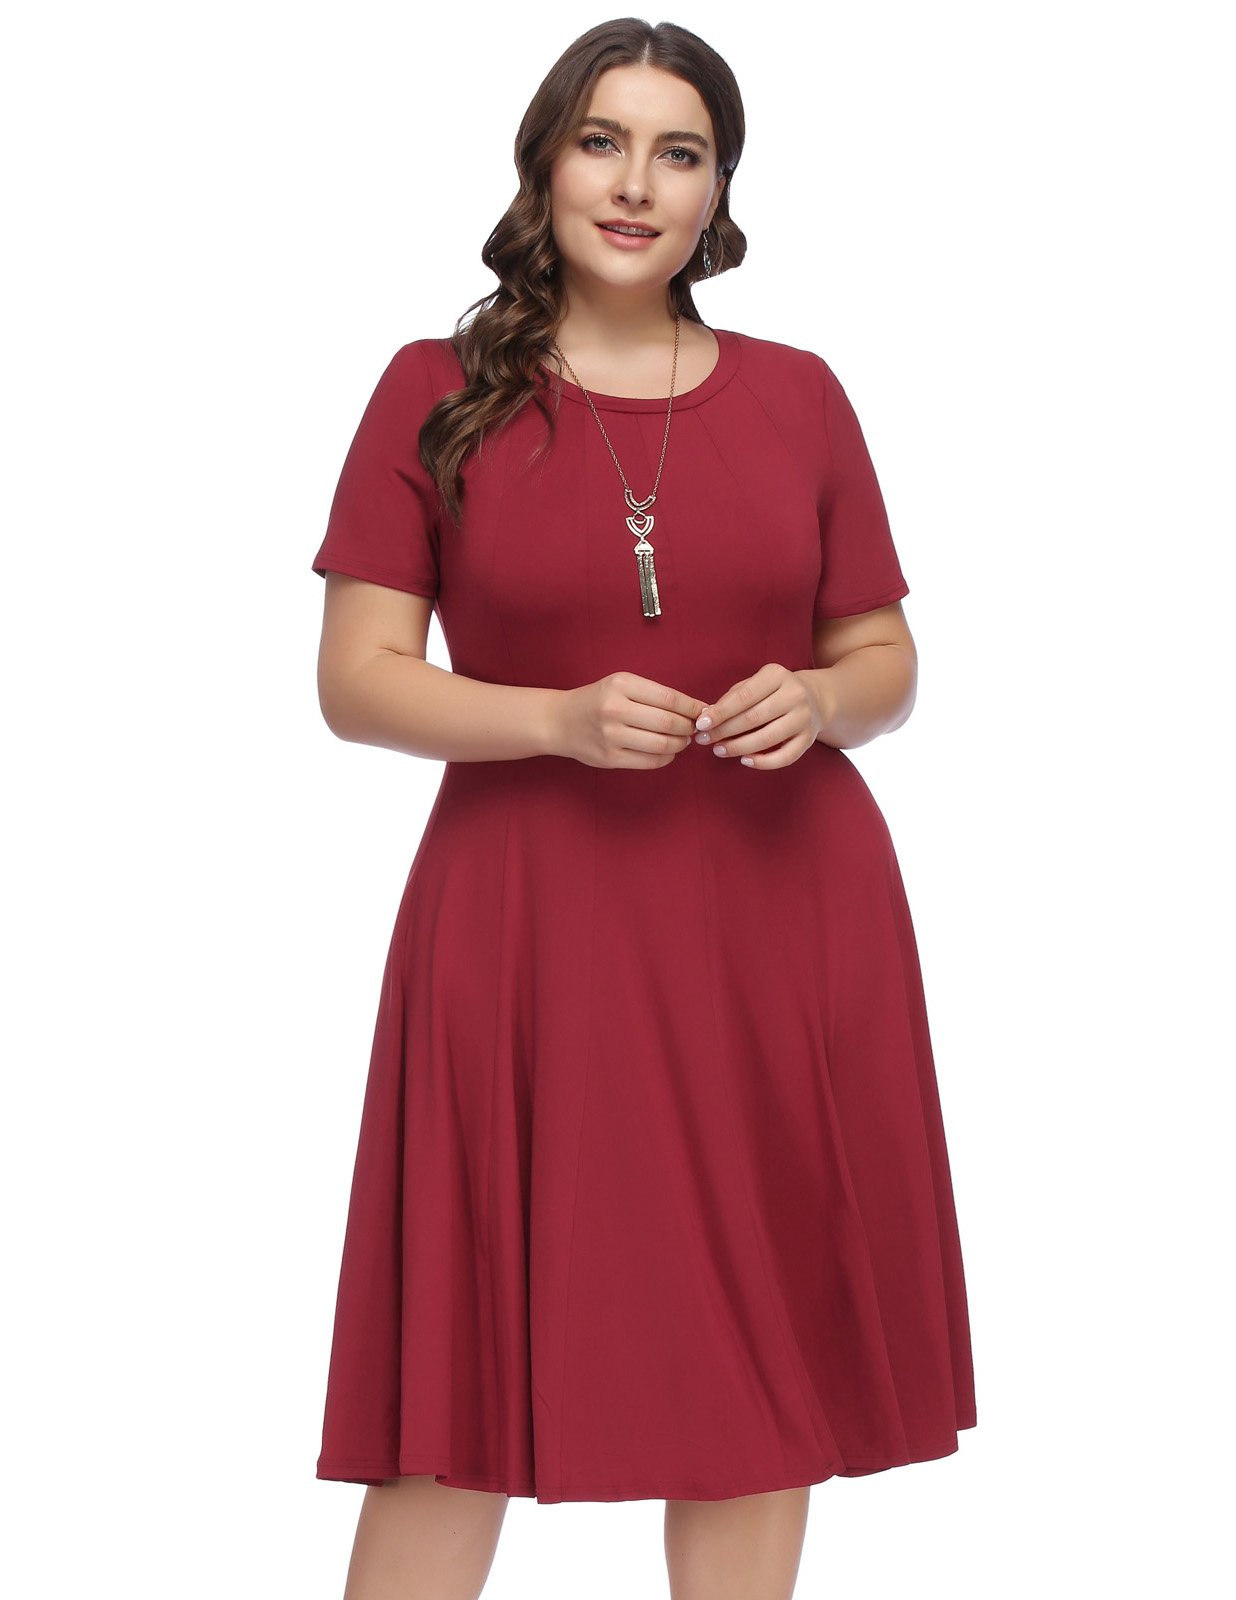 Hanna Nikole Womens Plus Size Loose Fit Swing Tunic Tops Basic T Shirt Size 16W Wine Red